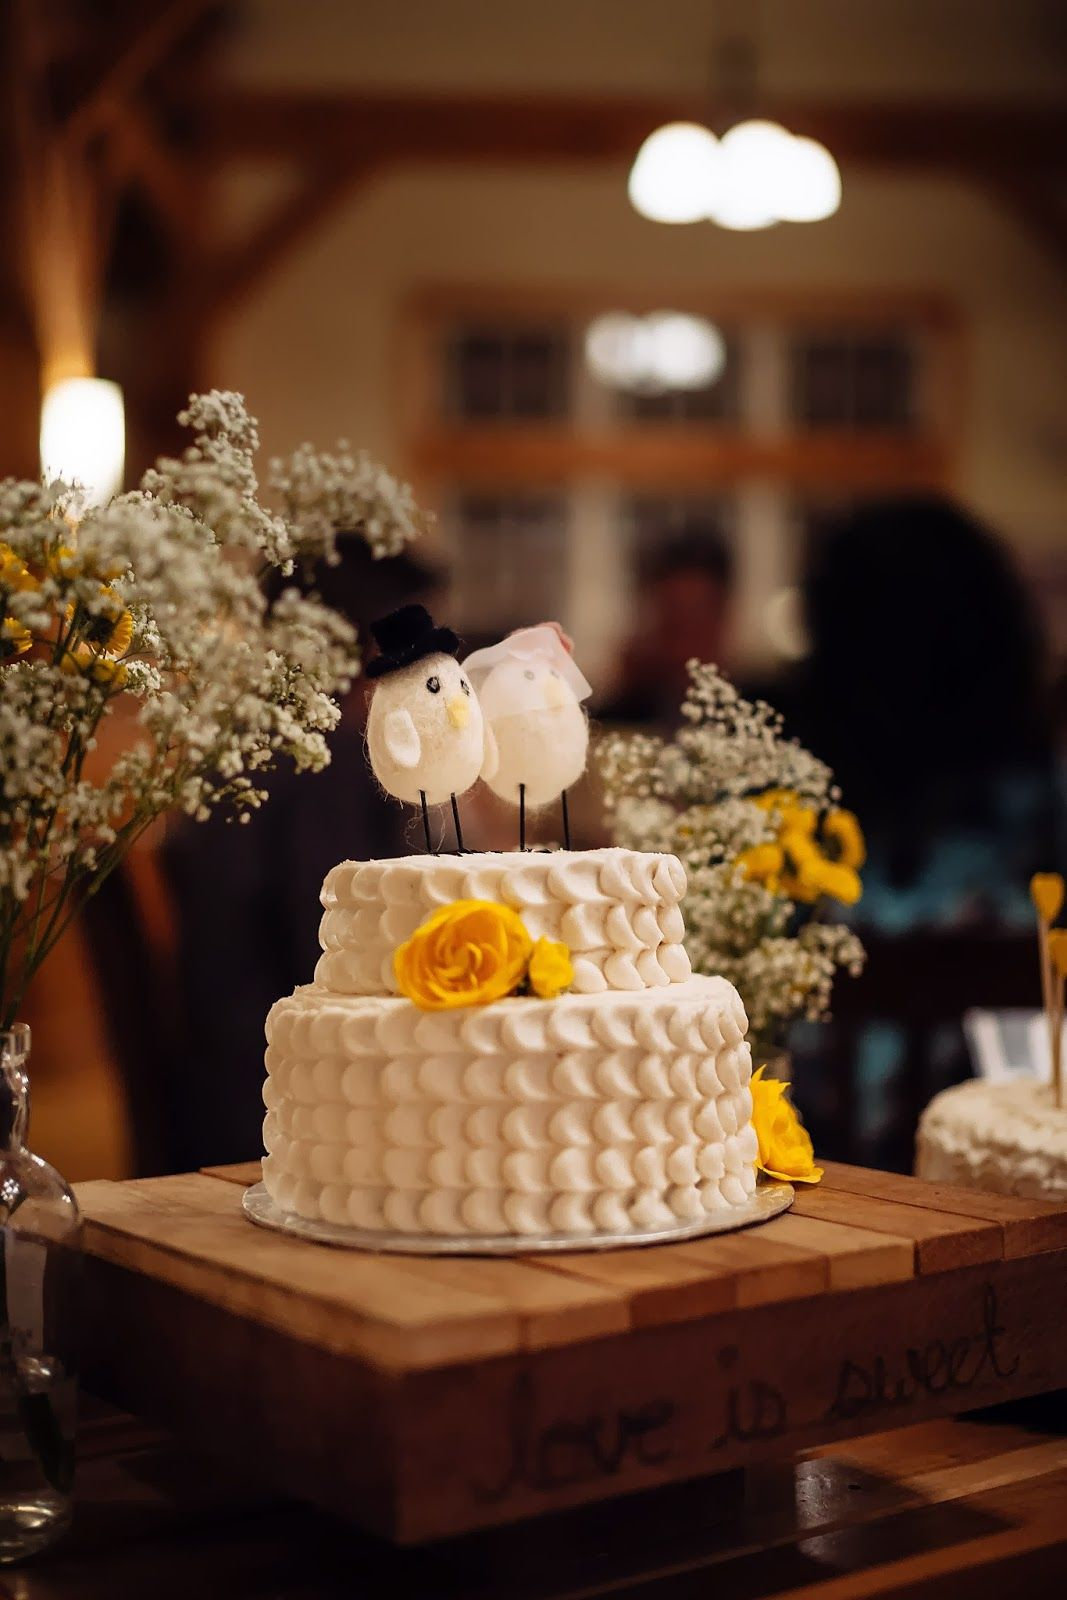 Rustic wedding cake with buttercream icing artificial yellow